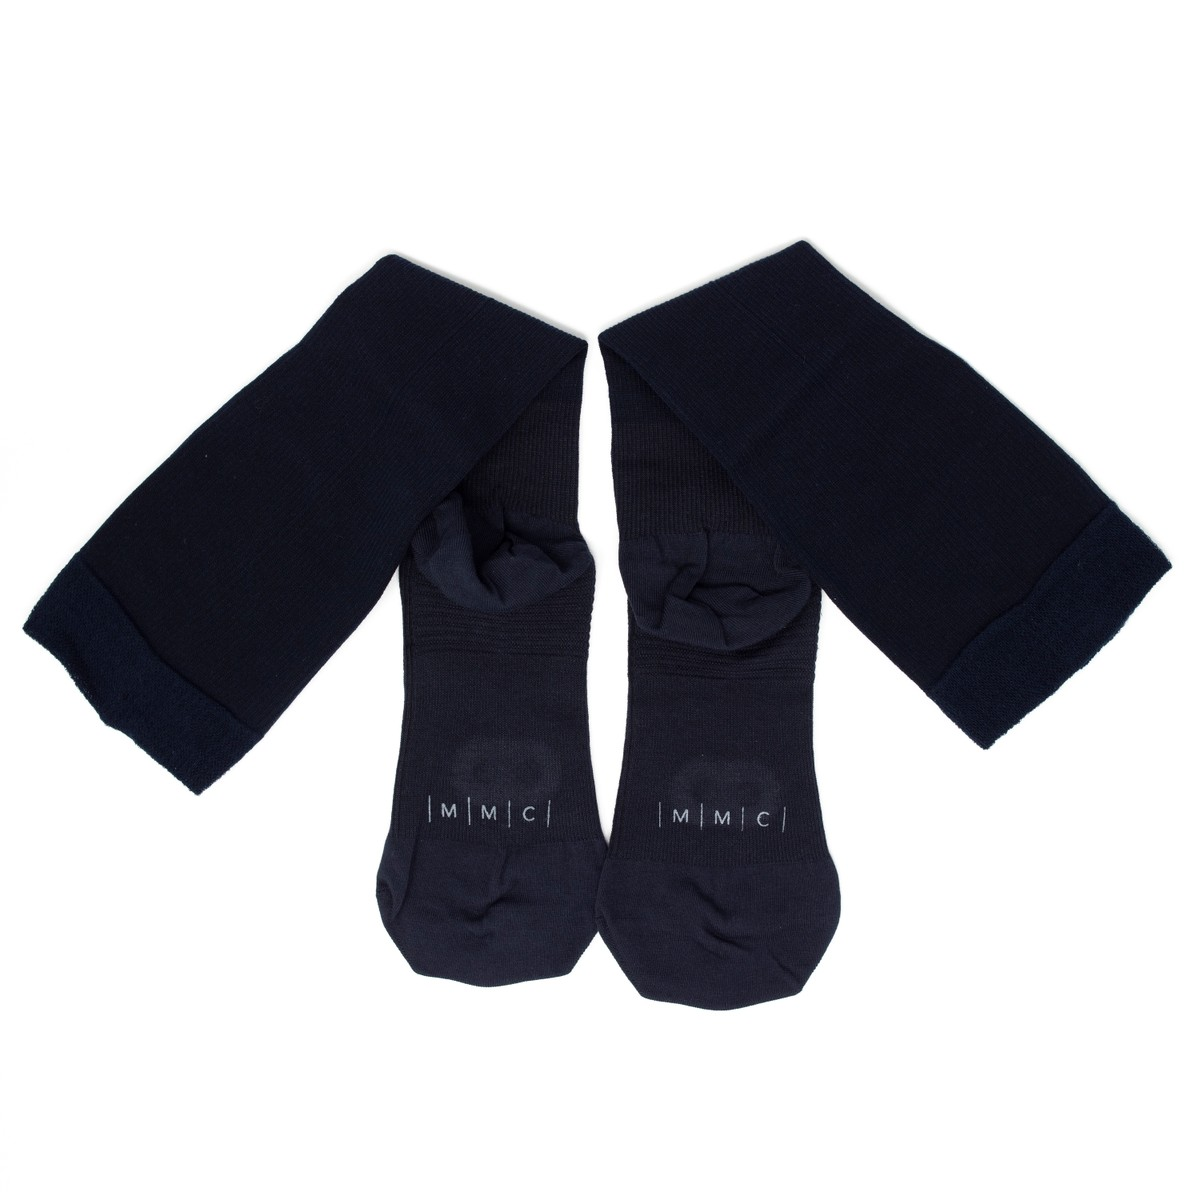 Photo of Japanese Daily Compression Socks Medium